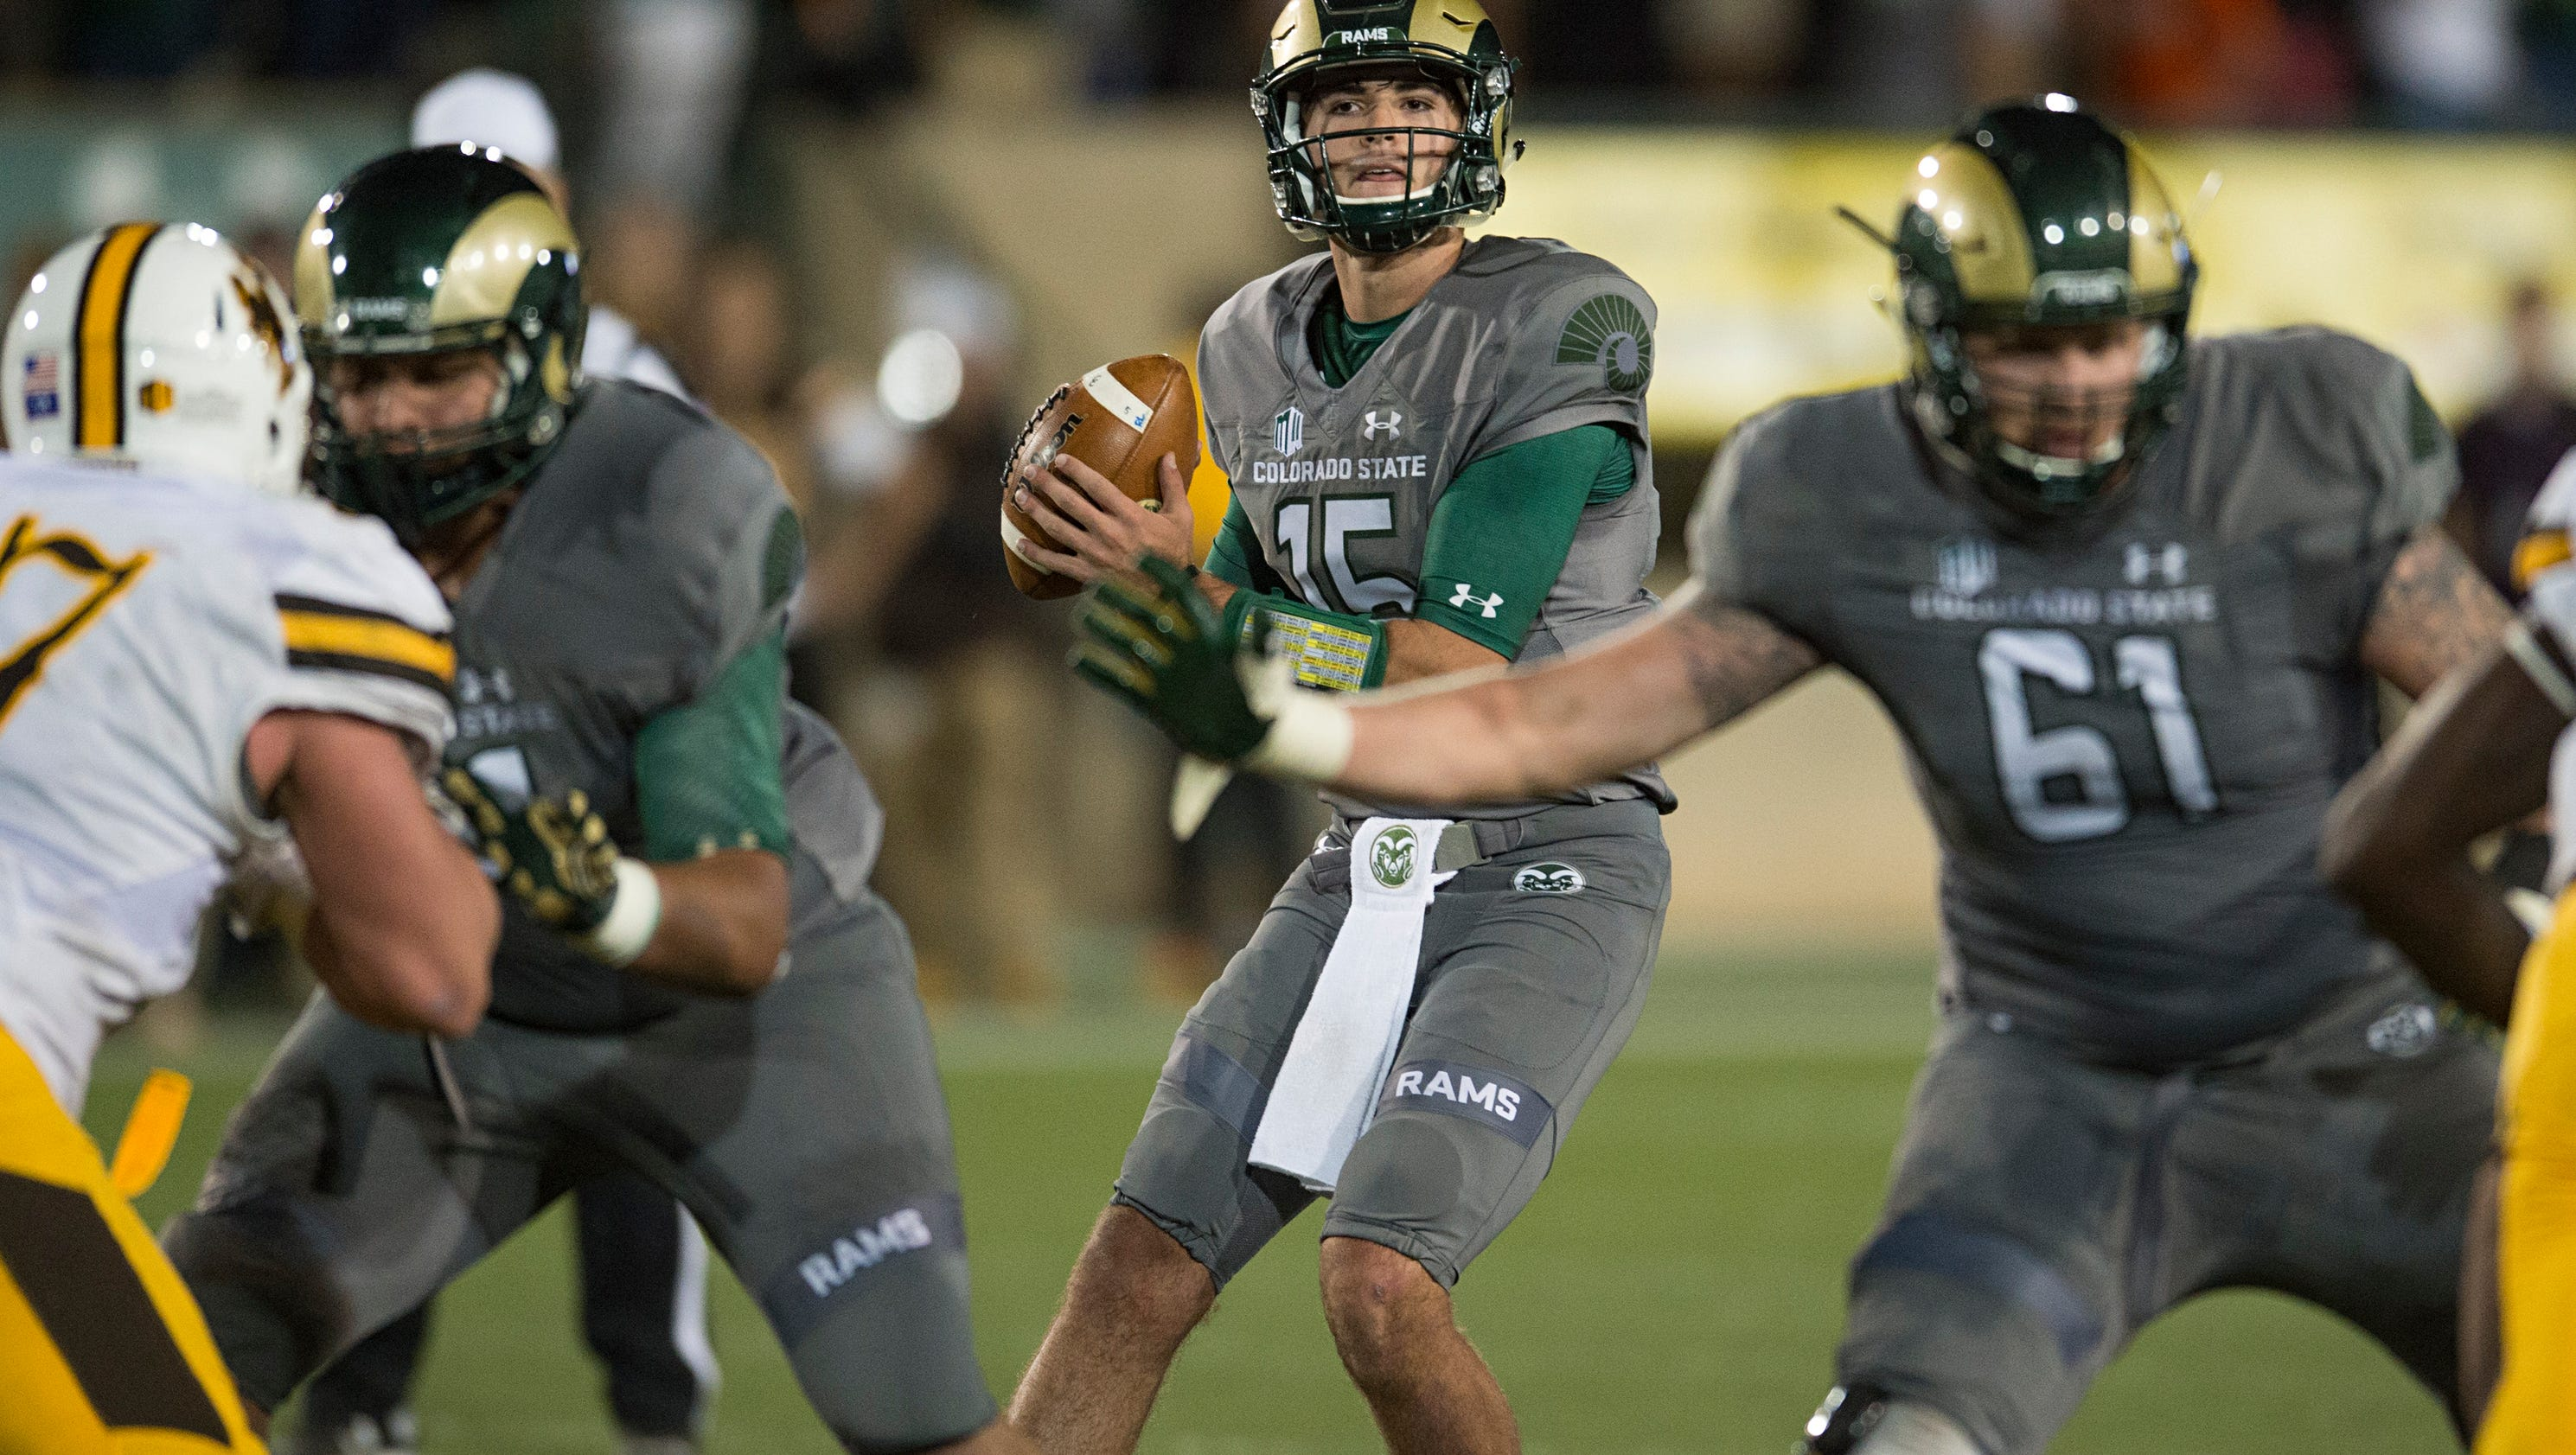 war and football Get oregon college football news, scores, standings, schedules and more comment on the news, see photos and videos, and join the forum discussions at oregonlivecom.